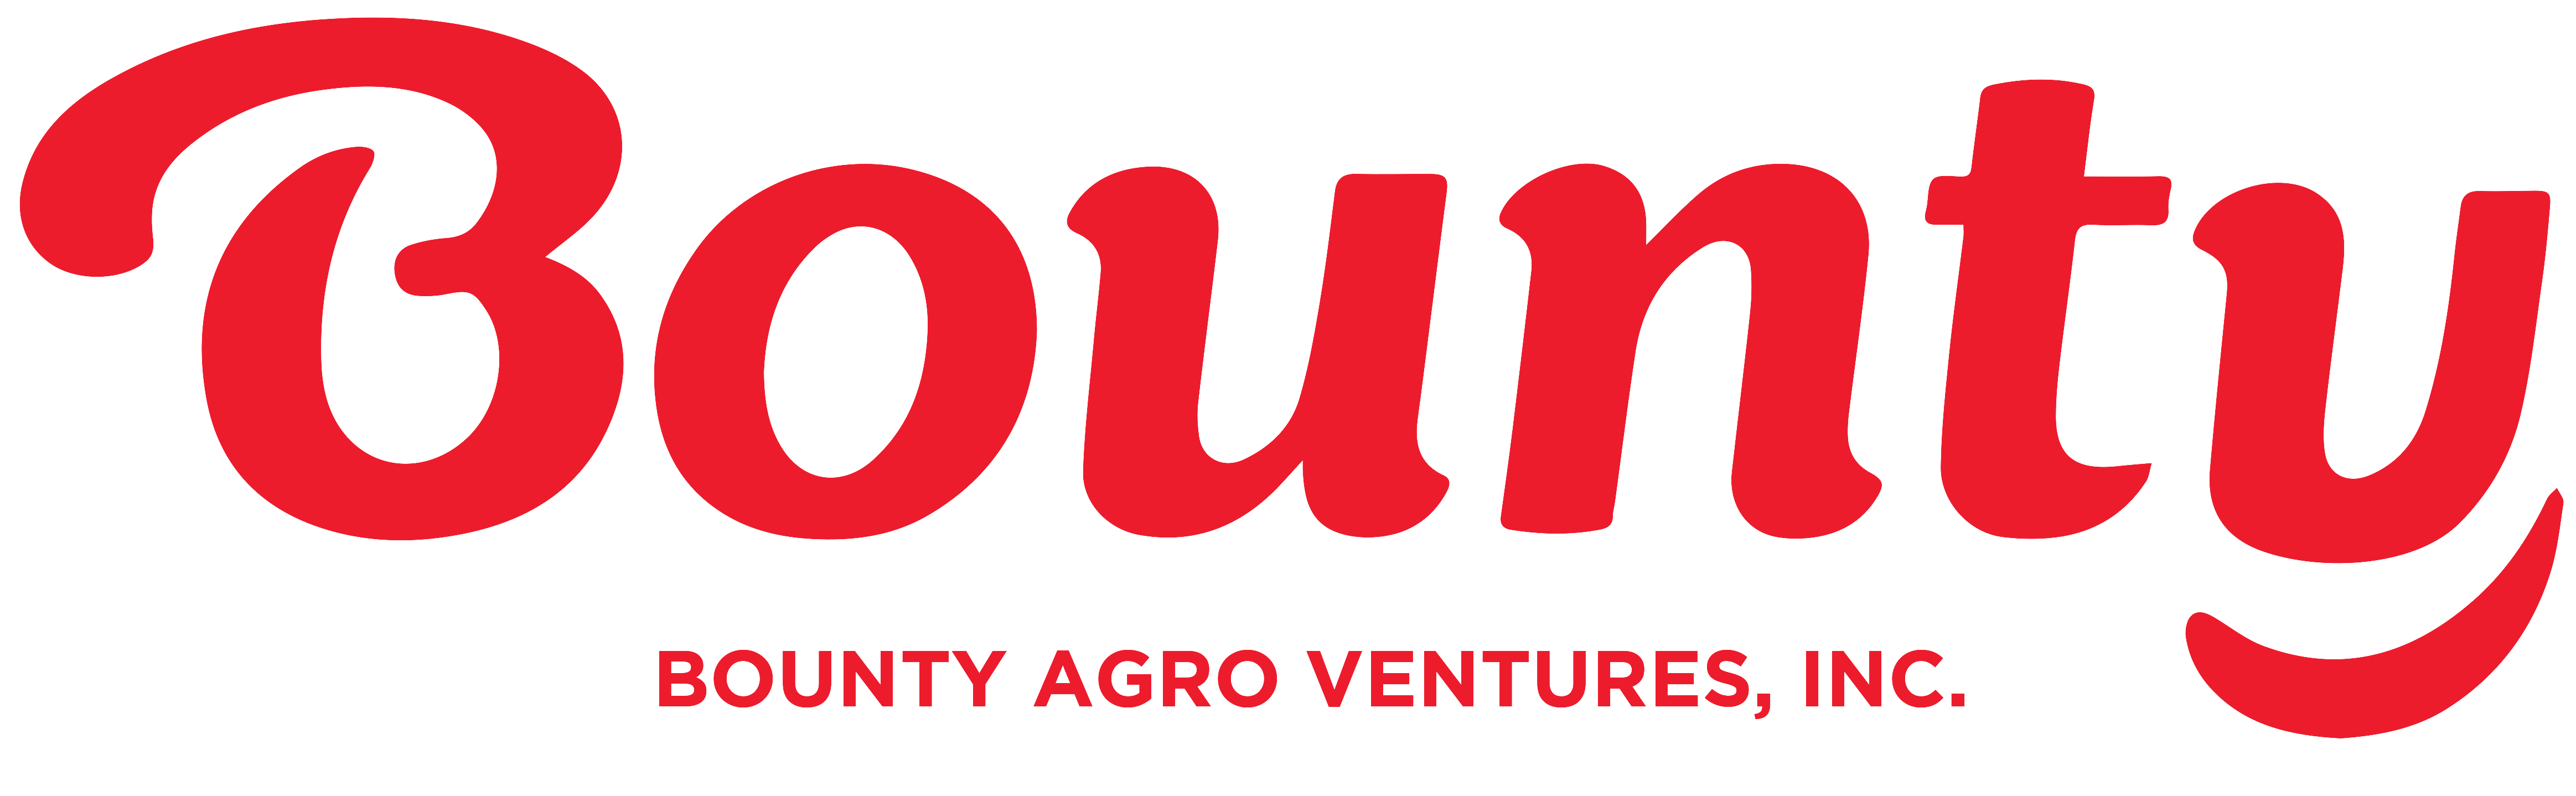 Bounty Agro Ventures, Inc. (BAVI)